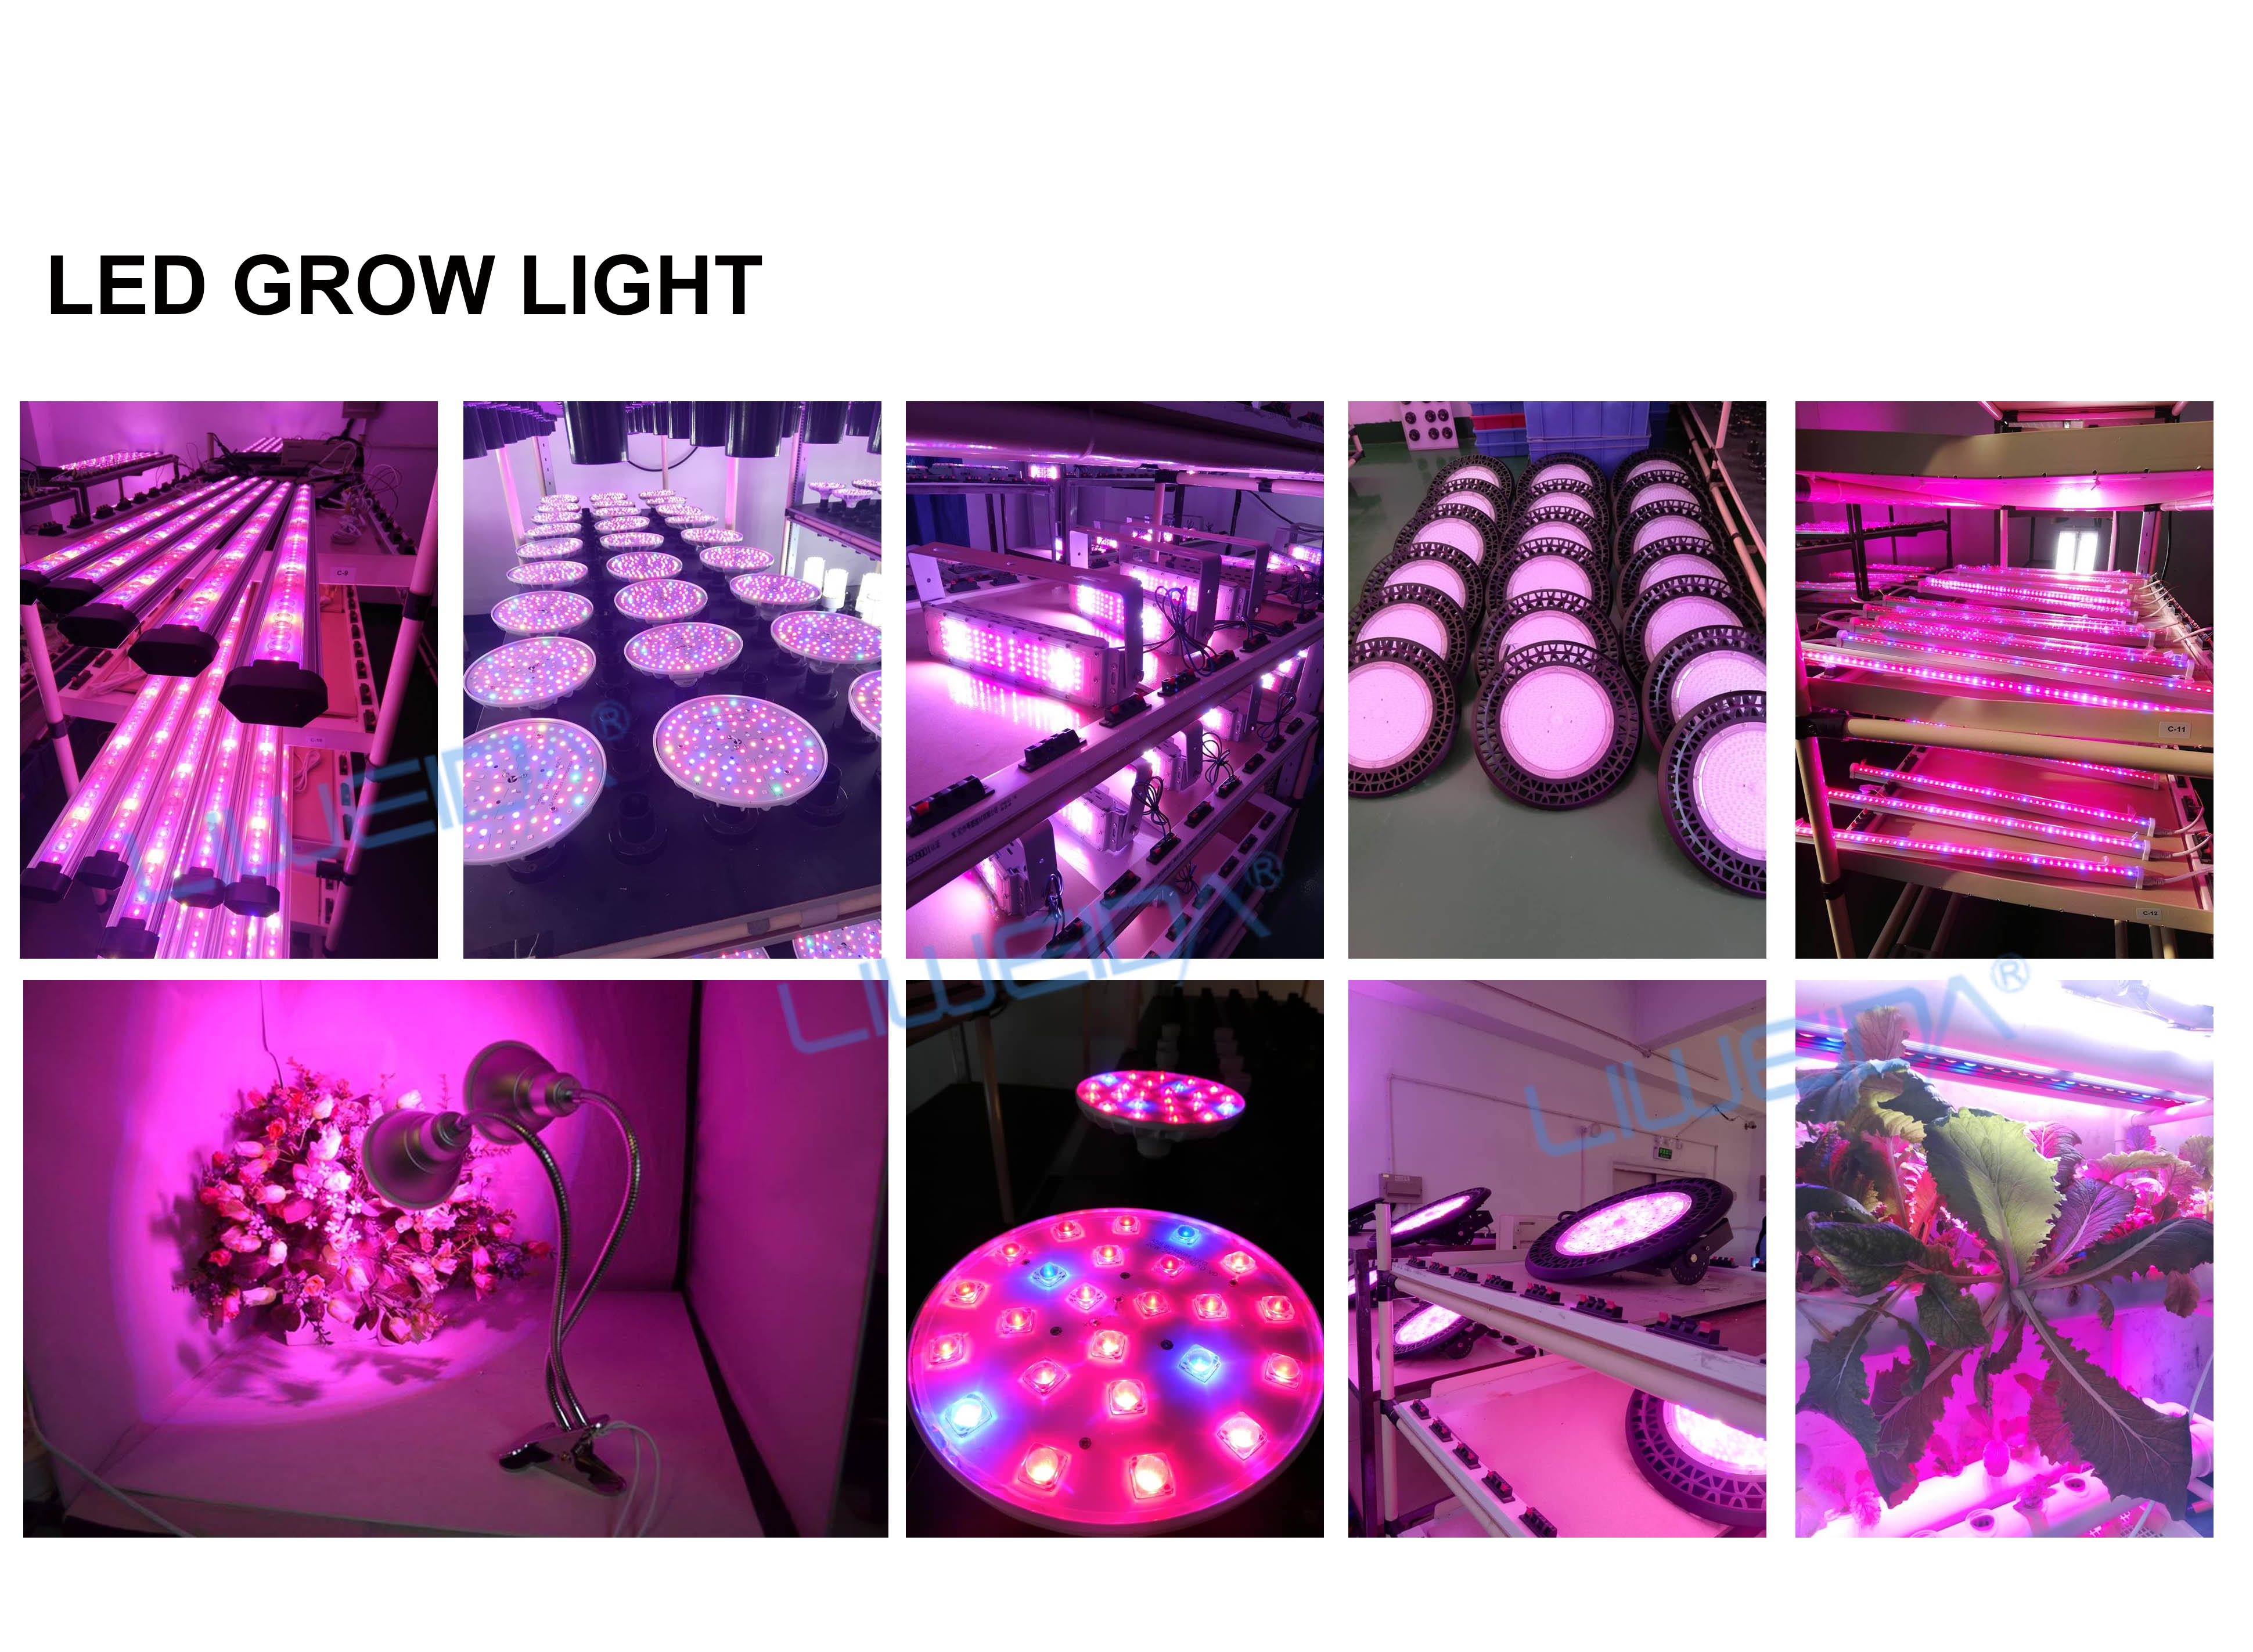 vertical farming Horticulture led linear grow light 250w full spectrum LED grow light for greenhouse plants